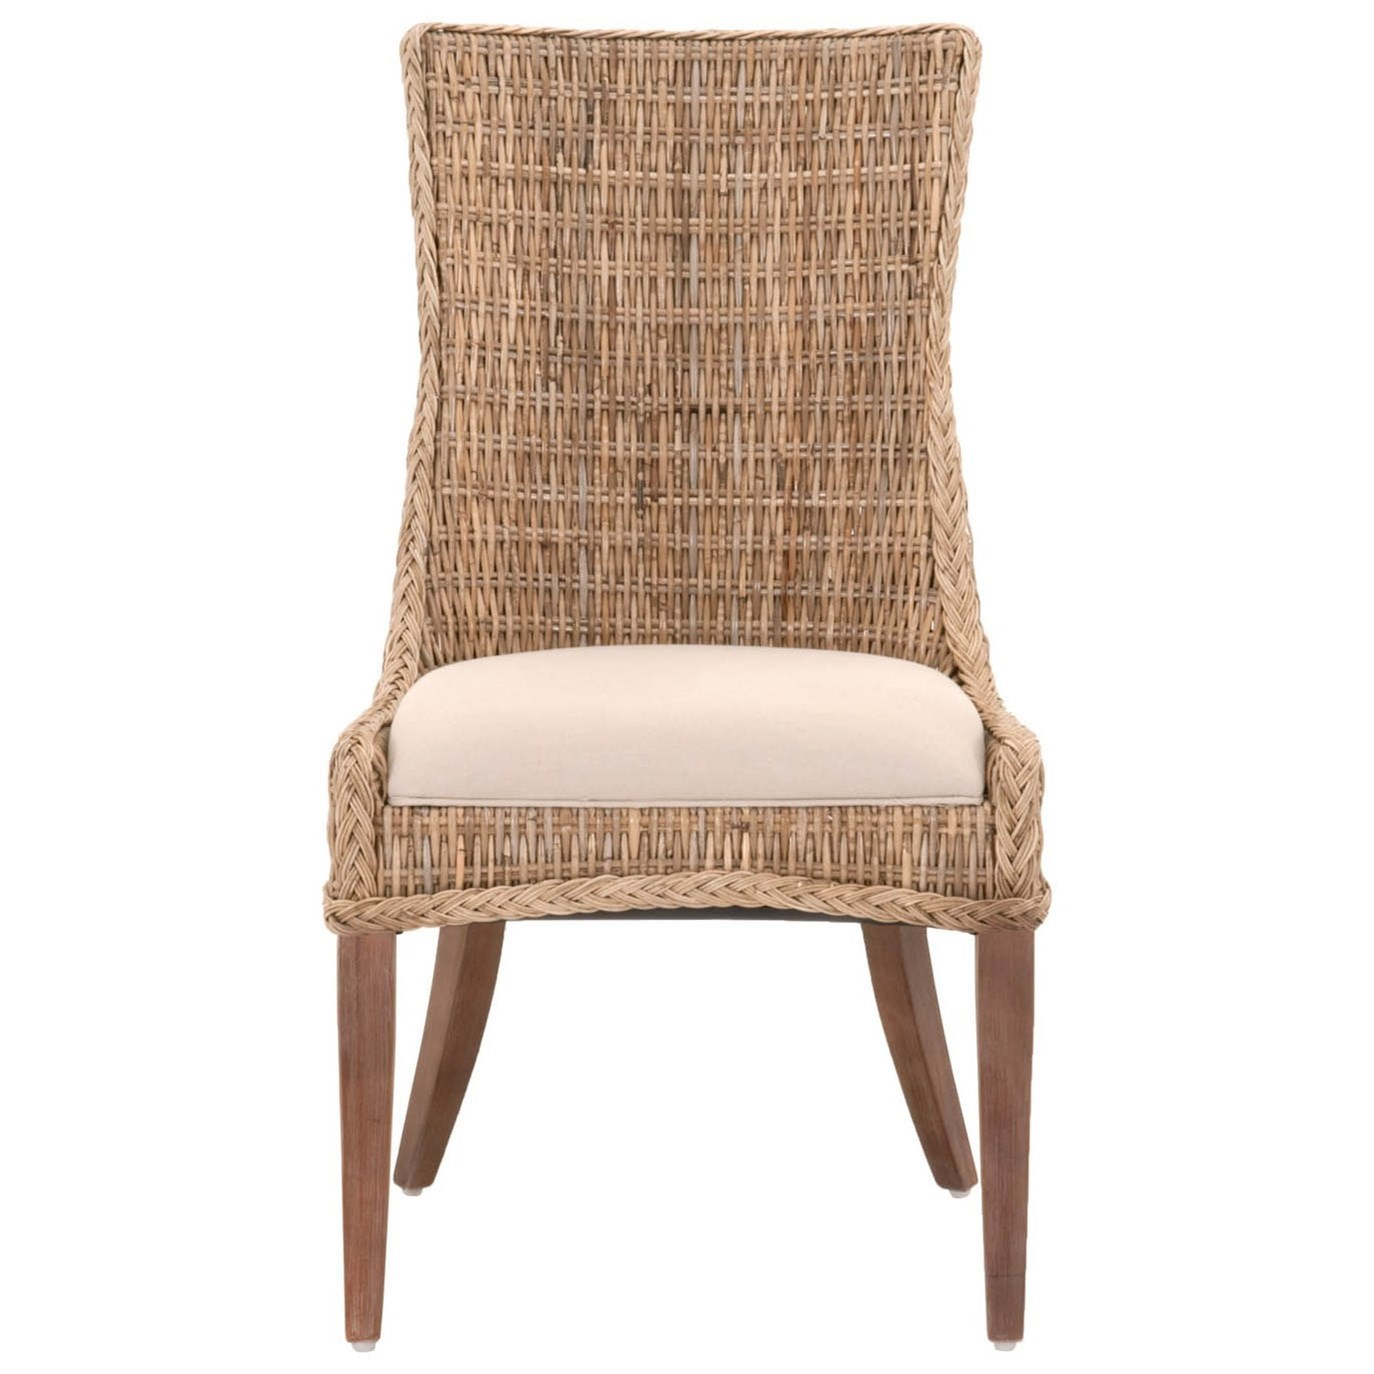 Wicker Greco Woven Wicker Dining Chair With Upholstered Seat By Orient  Express Furniture At Baeru0027s Furniture